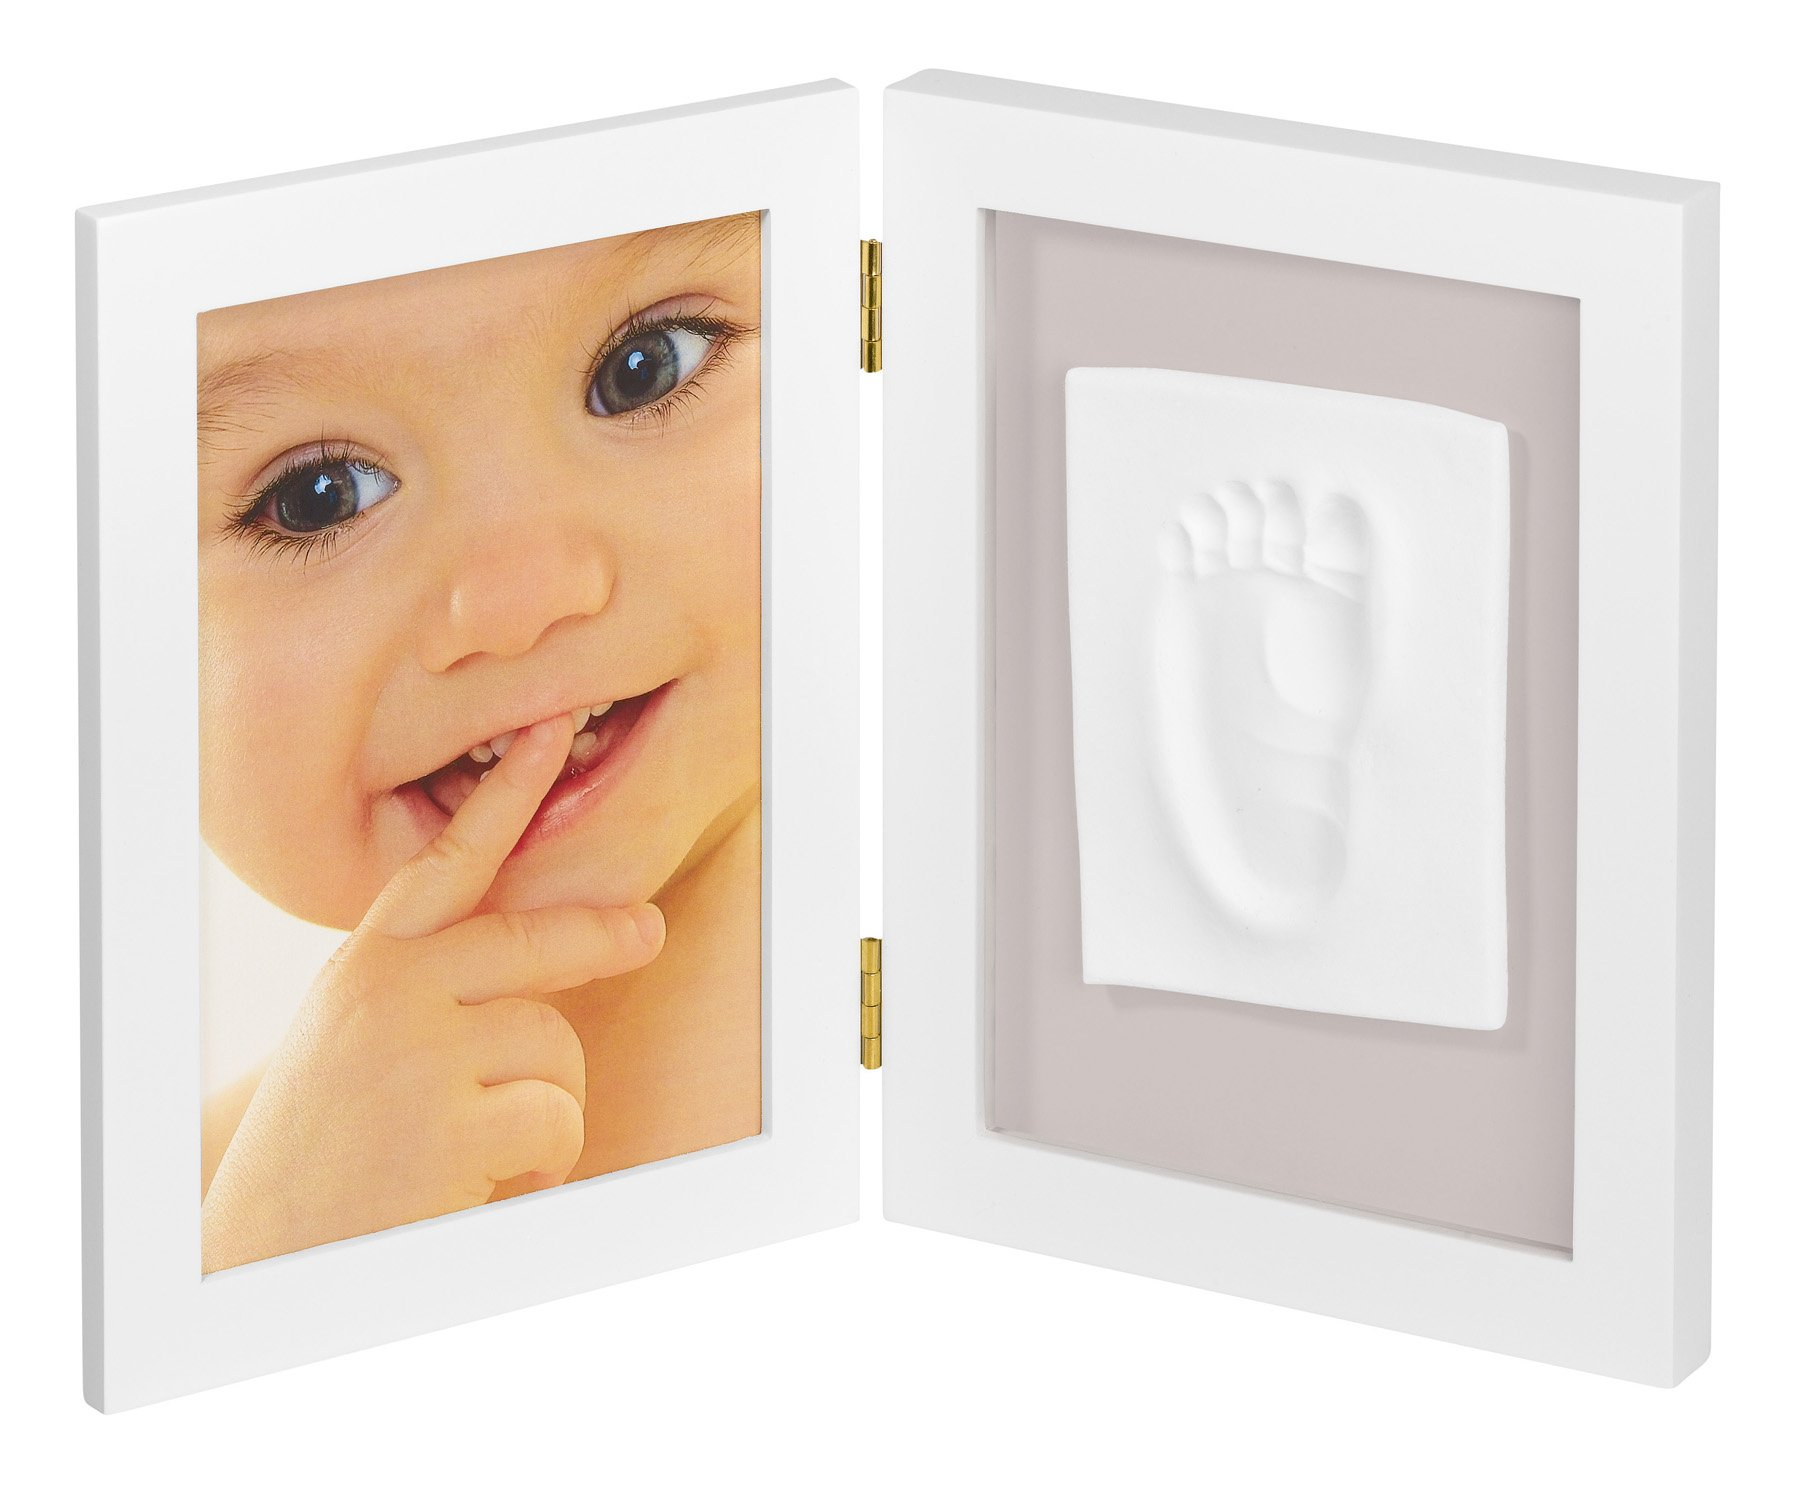 My Sweet Memories 2-Piece Picture Frame for Picture and Baby Print White product image